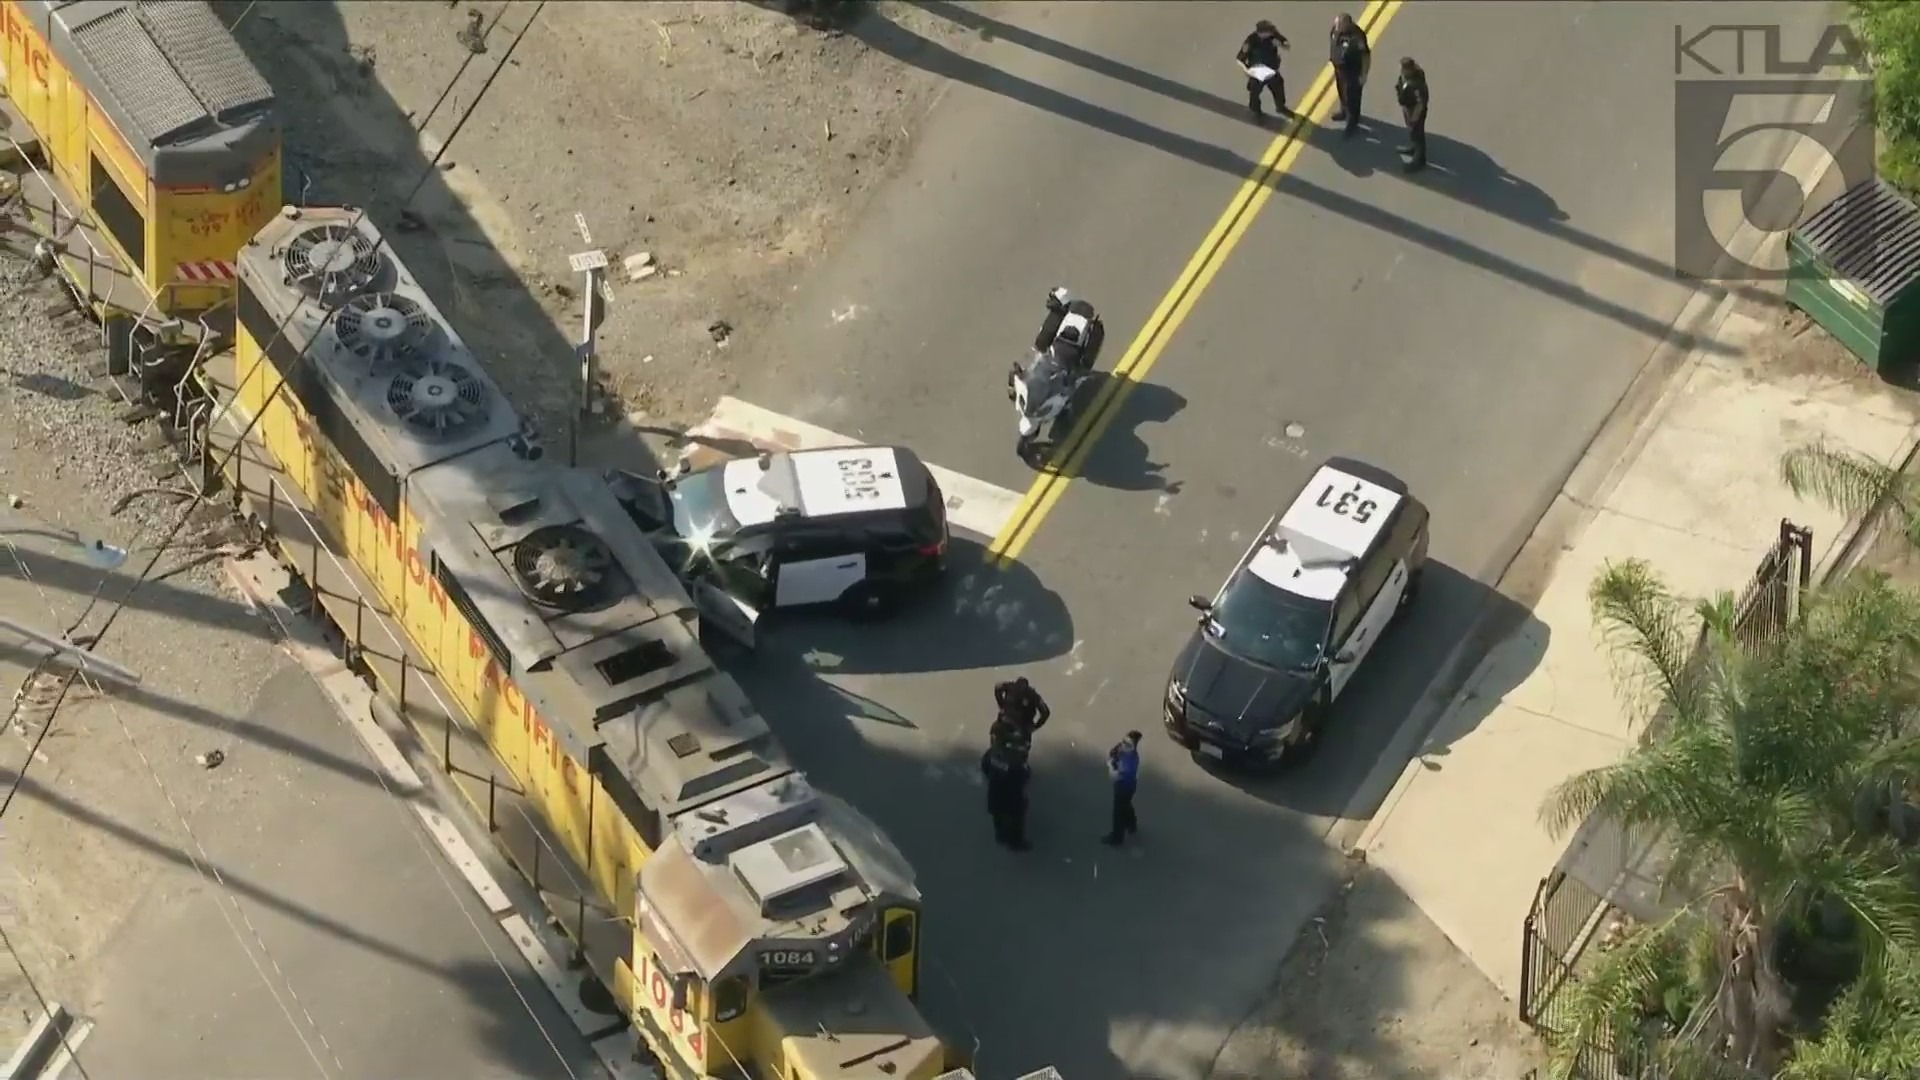 A Chino officer was responding to a traffic collision on May 18, 2021, when the police vehicle collided with a passing train. (KTLA)